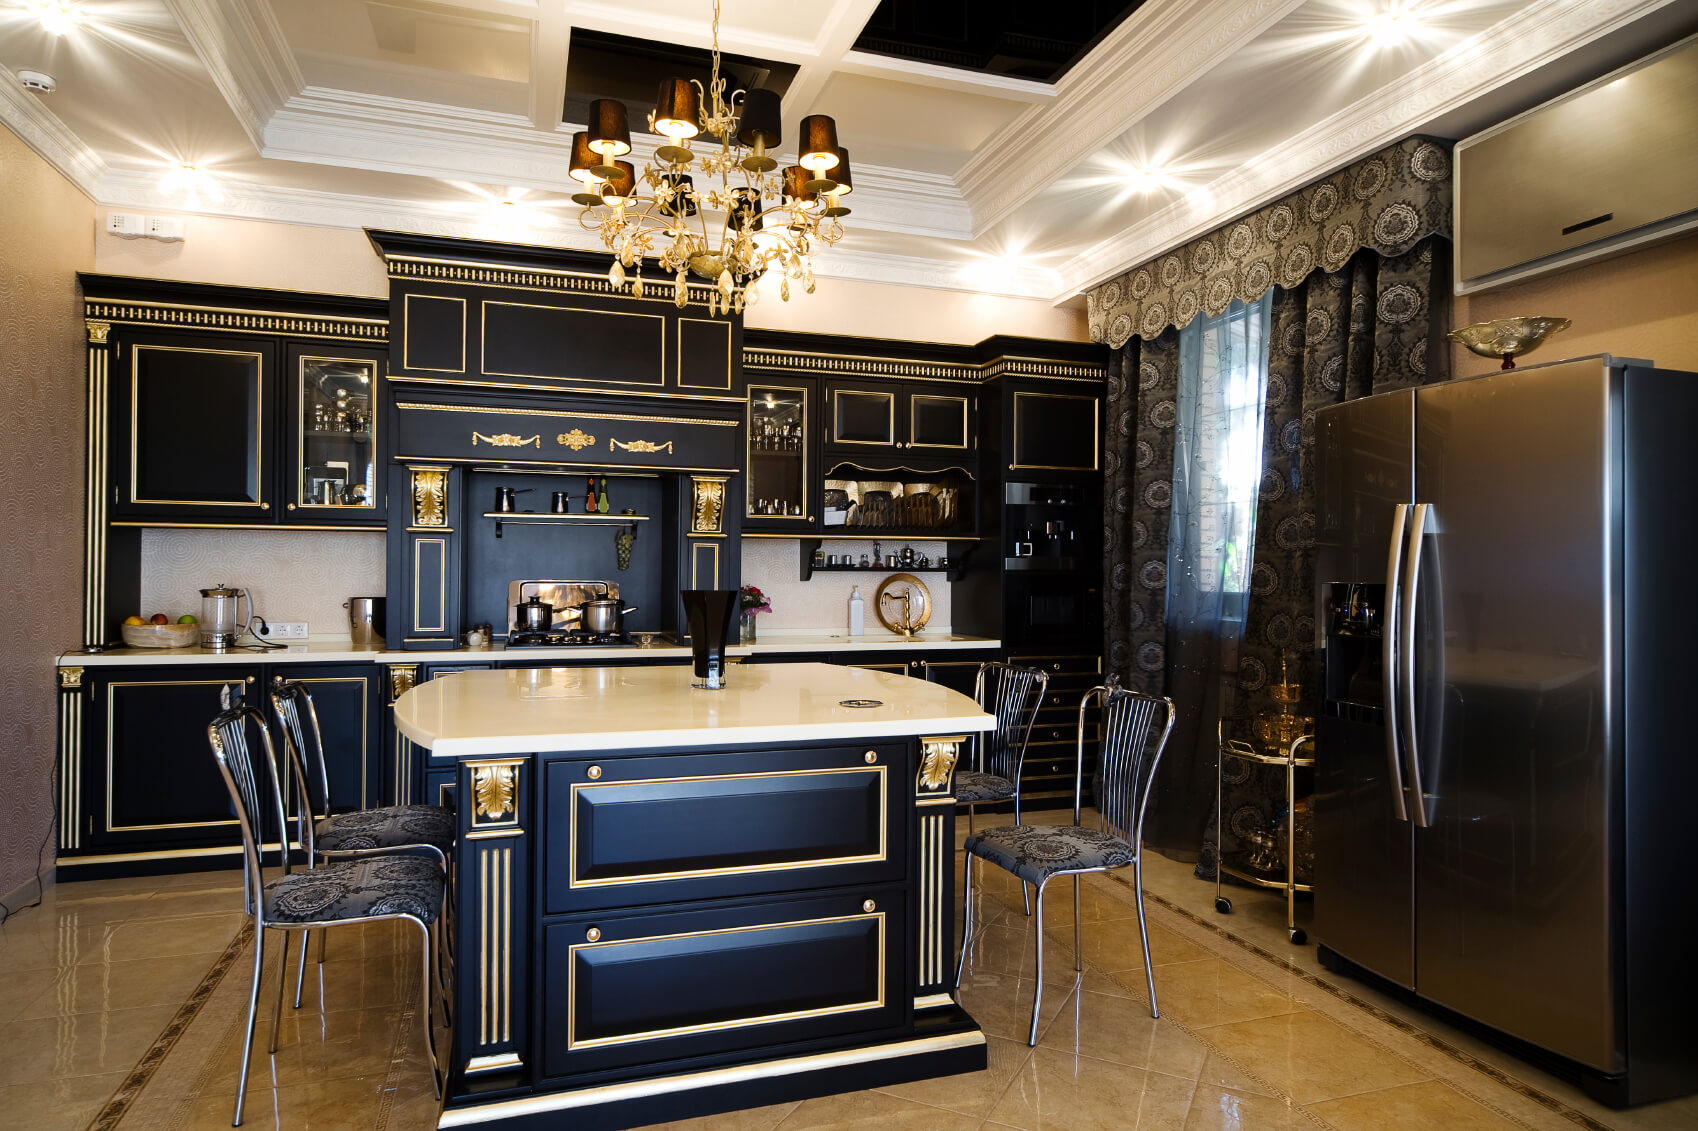 dark kitchen cabinets black kitchen cabinets Ultra luxurious kitchen features gilded black wood cabinetry over beige marble flooring White marble countertops